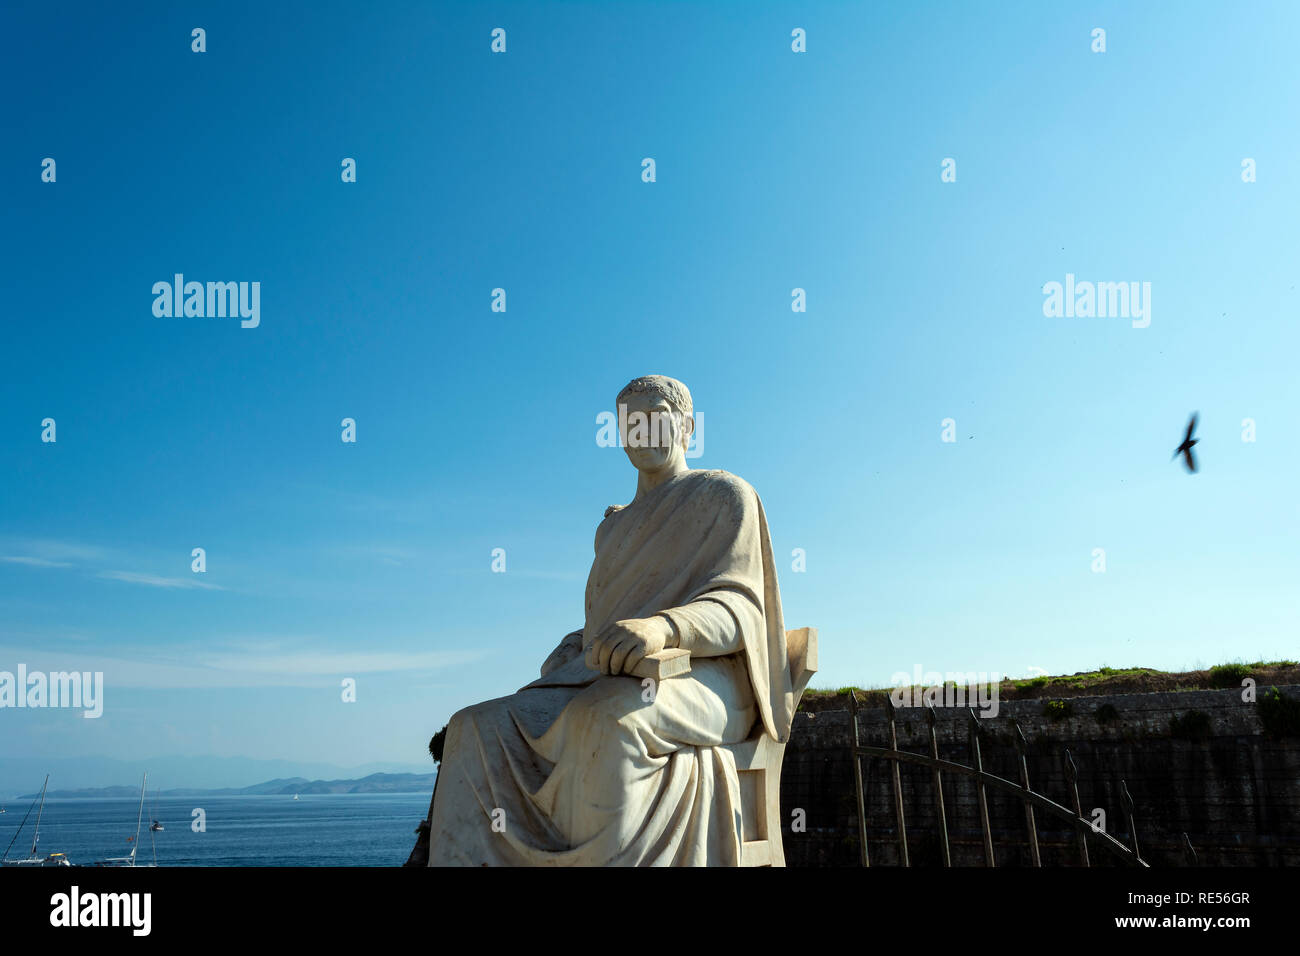 Statue of British High Commissioner Guilford in the Boschetto Park in Corfu Town, Greece. - Stock Image